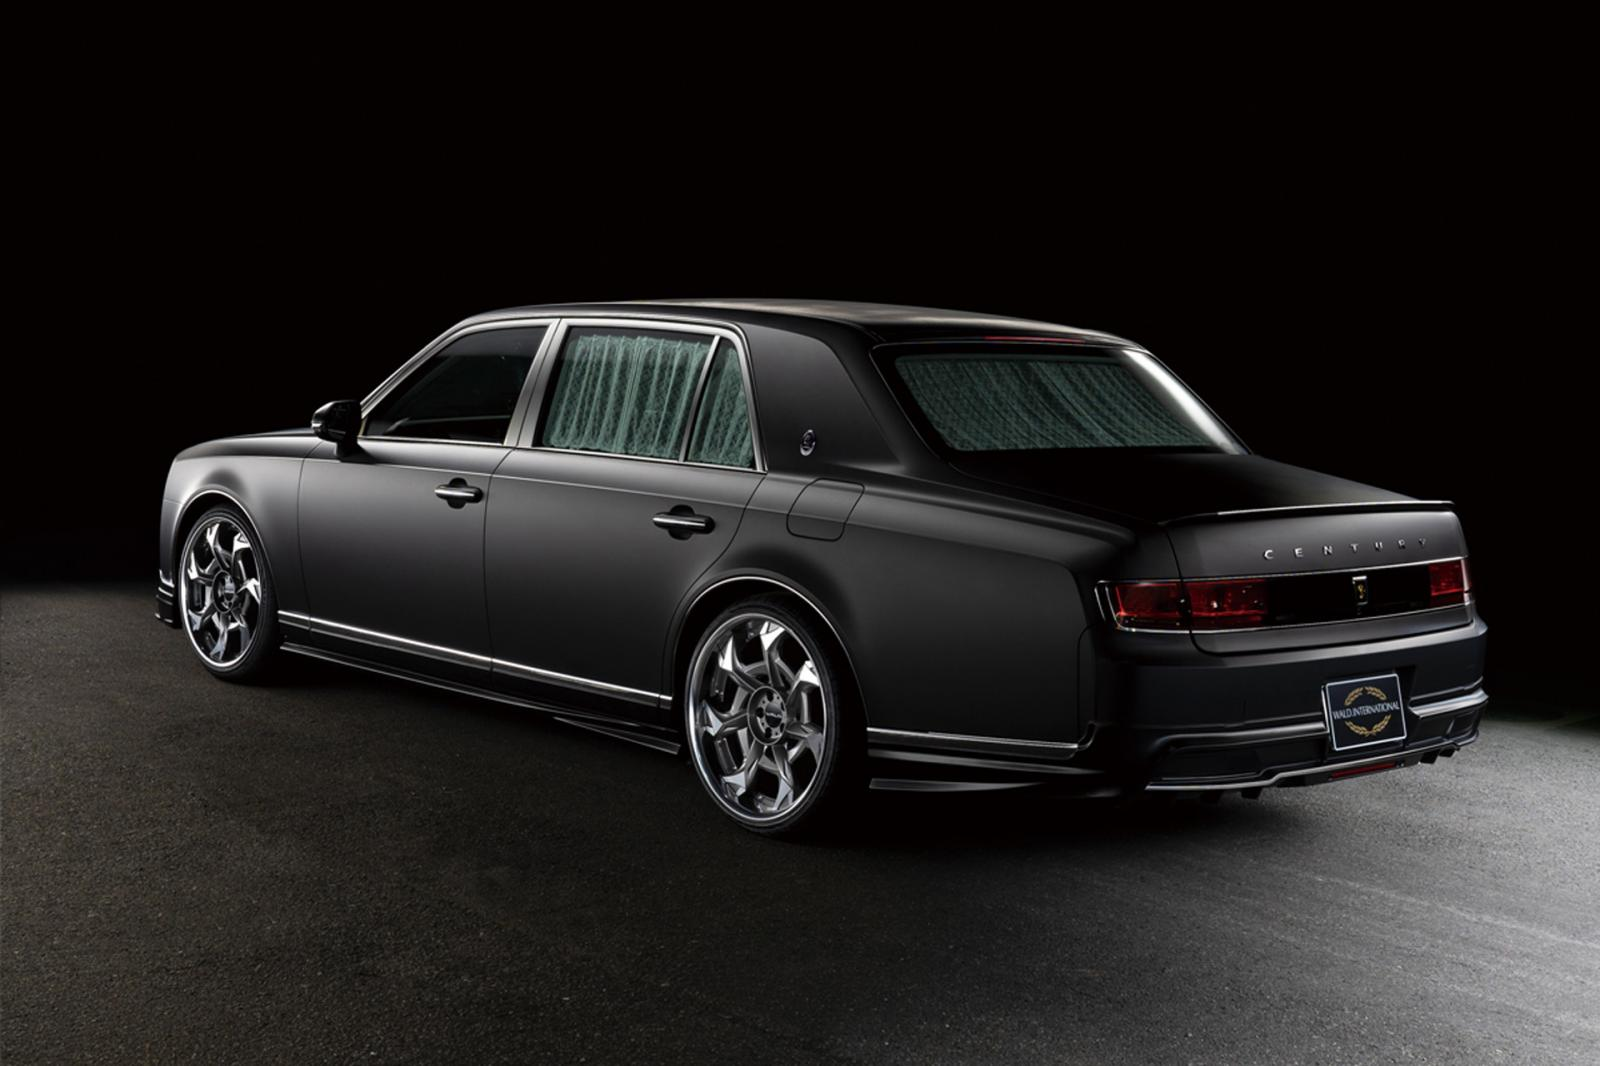 Toyota Century by Wald